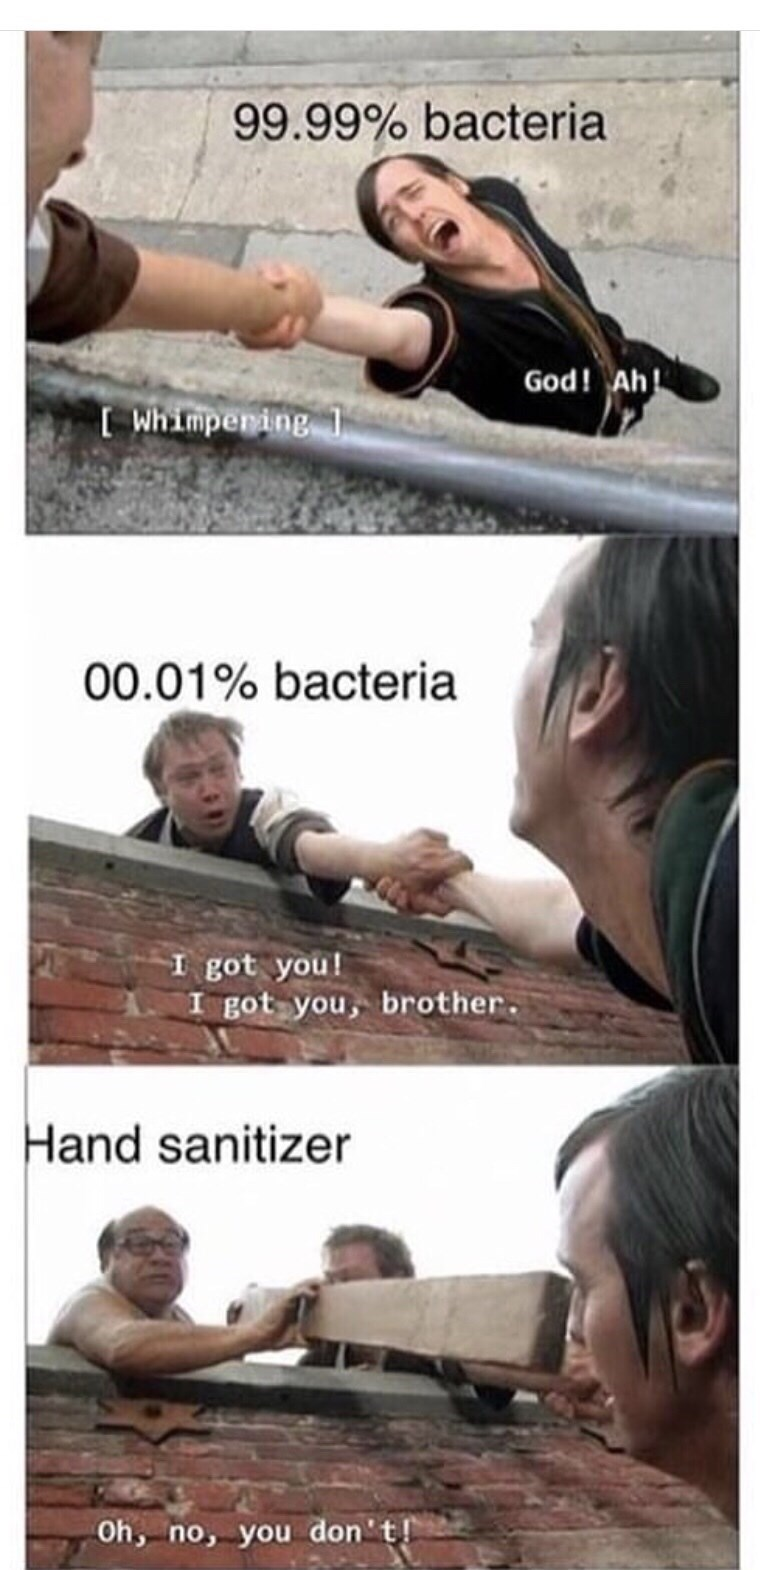 humpday meme about killing 99.9% of germs with scene from Always Sunny